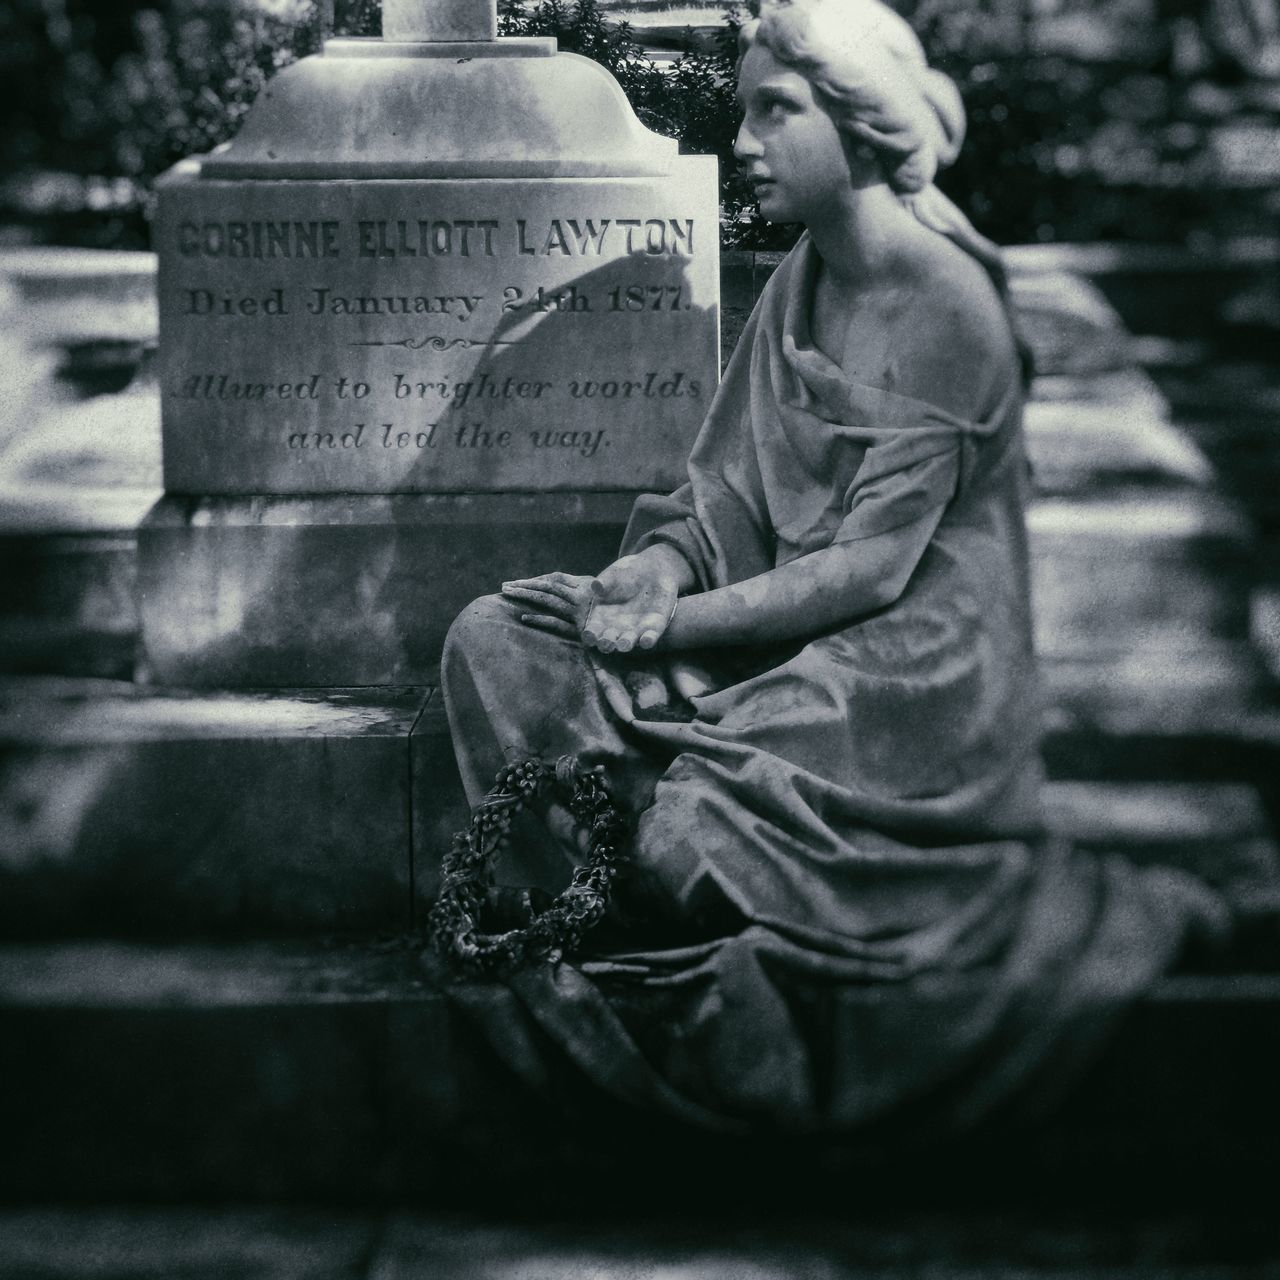 Allured to brighter worlds, and led the way. Blackandwhite Bonaventure Cemetery Cemetery Marble Monument Outdoors Representation Of A Woman Sculpture Statue Tourism Wetplate